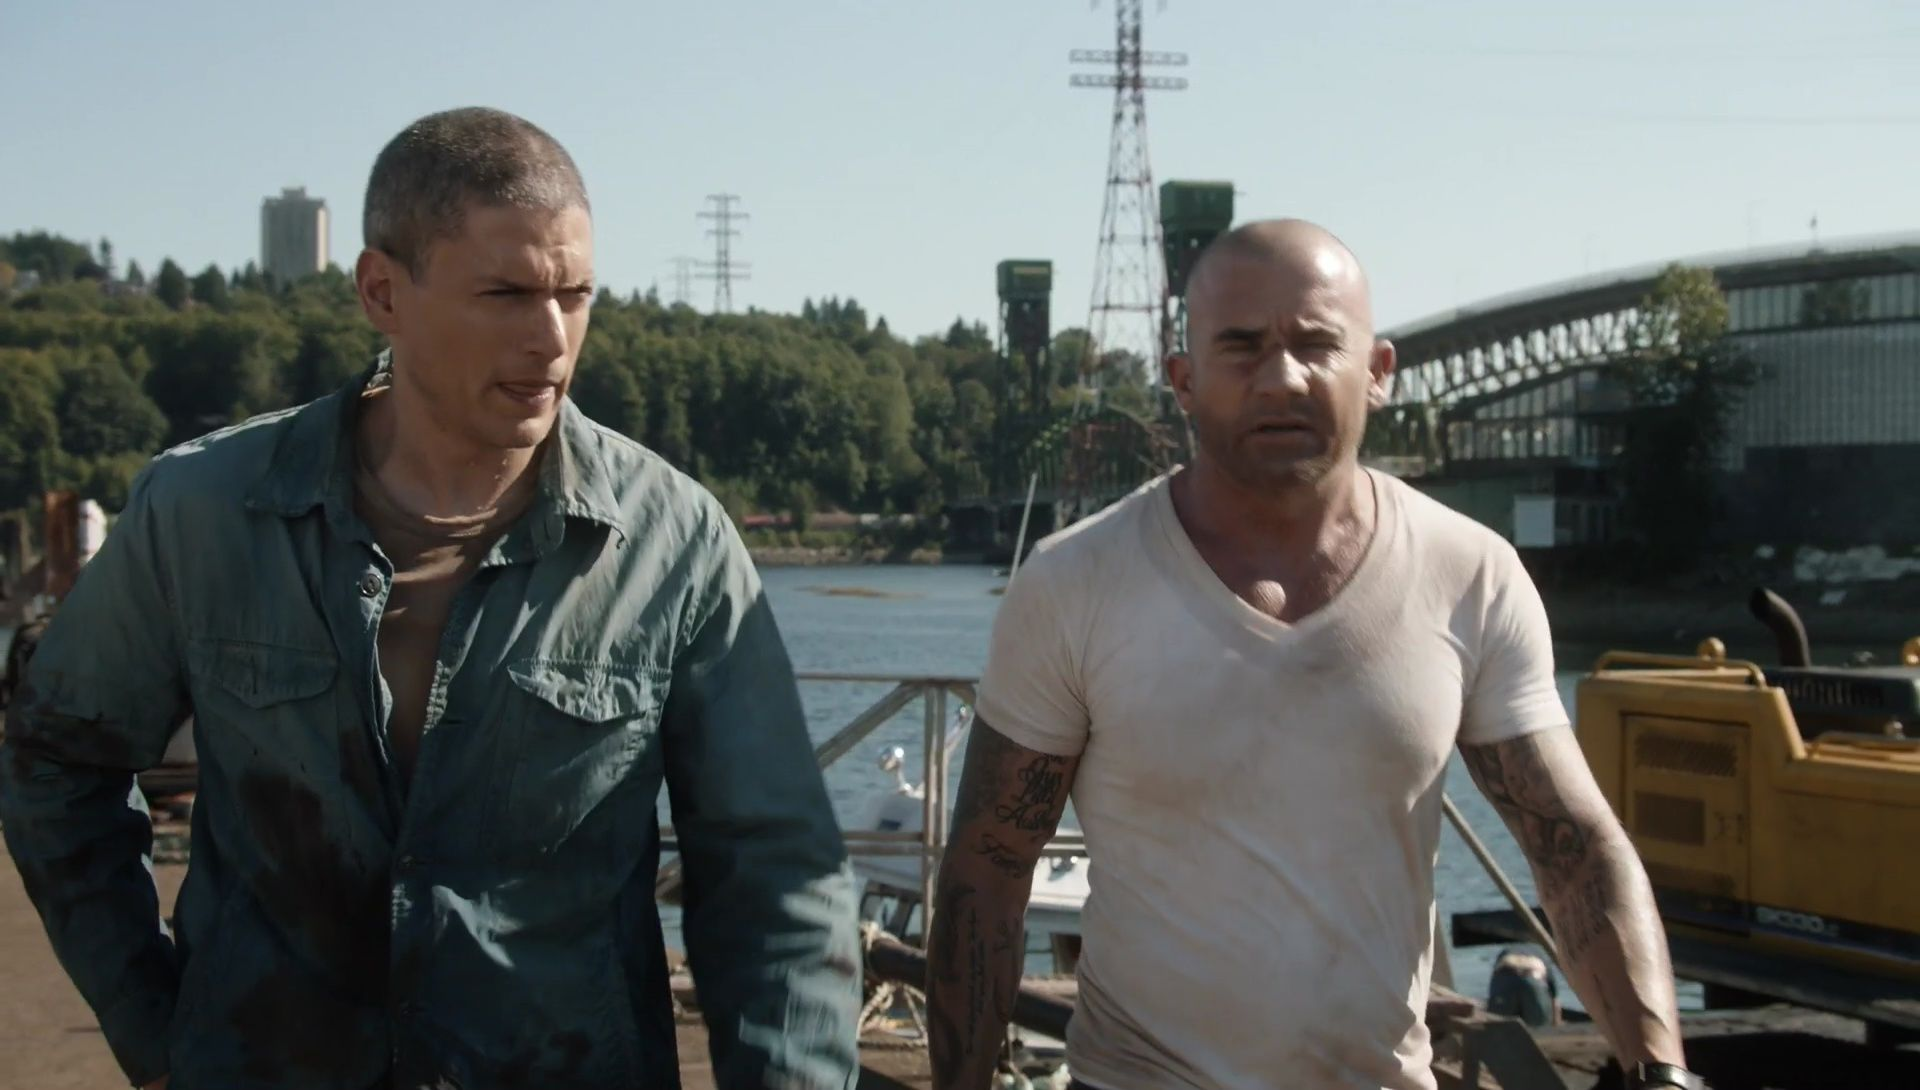 prison break essay The prison is straightforward and matter of fact malamud tells it directly without moralizing or editorializing save for its final page, the story is told in the third-person singular.